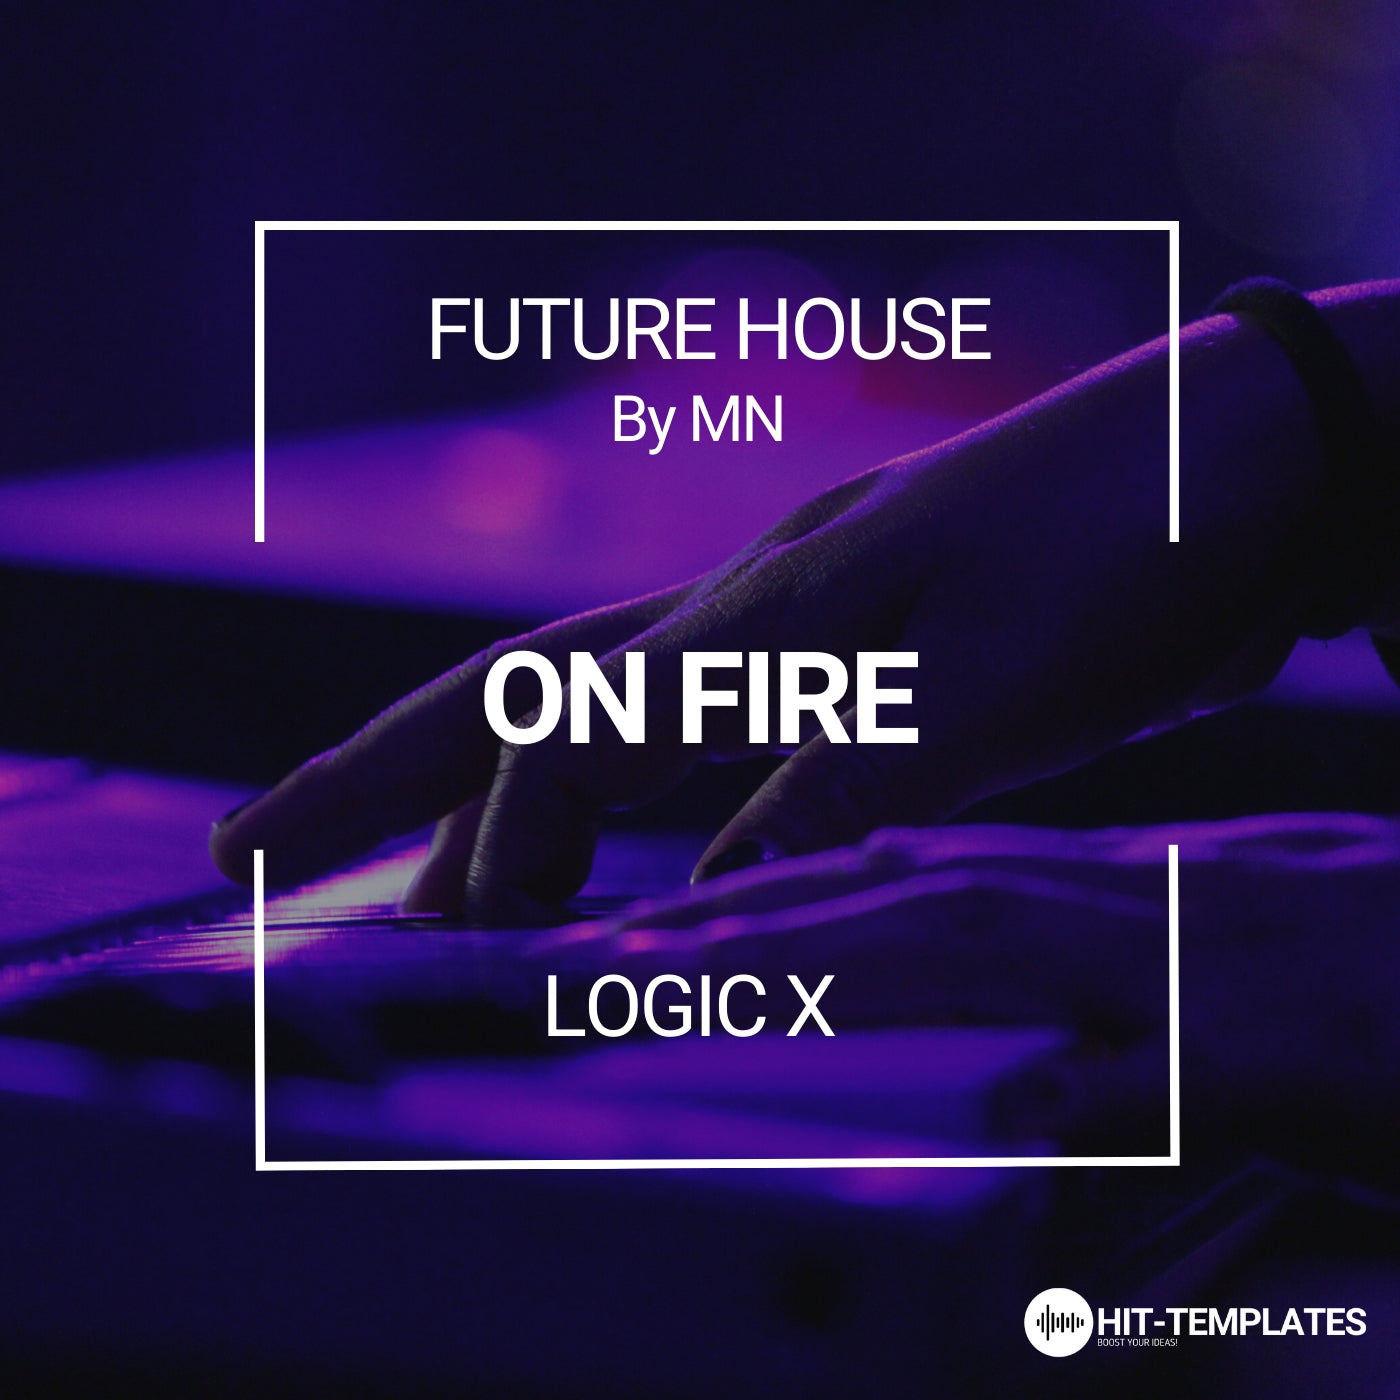 ON FIRE - FUTURE HOUSE